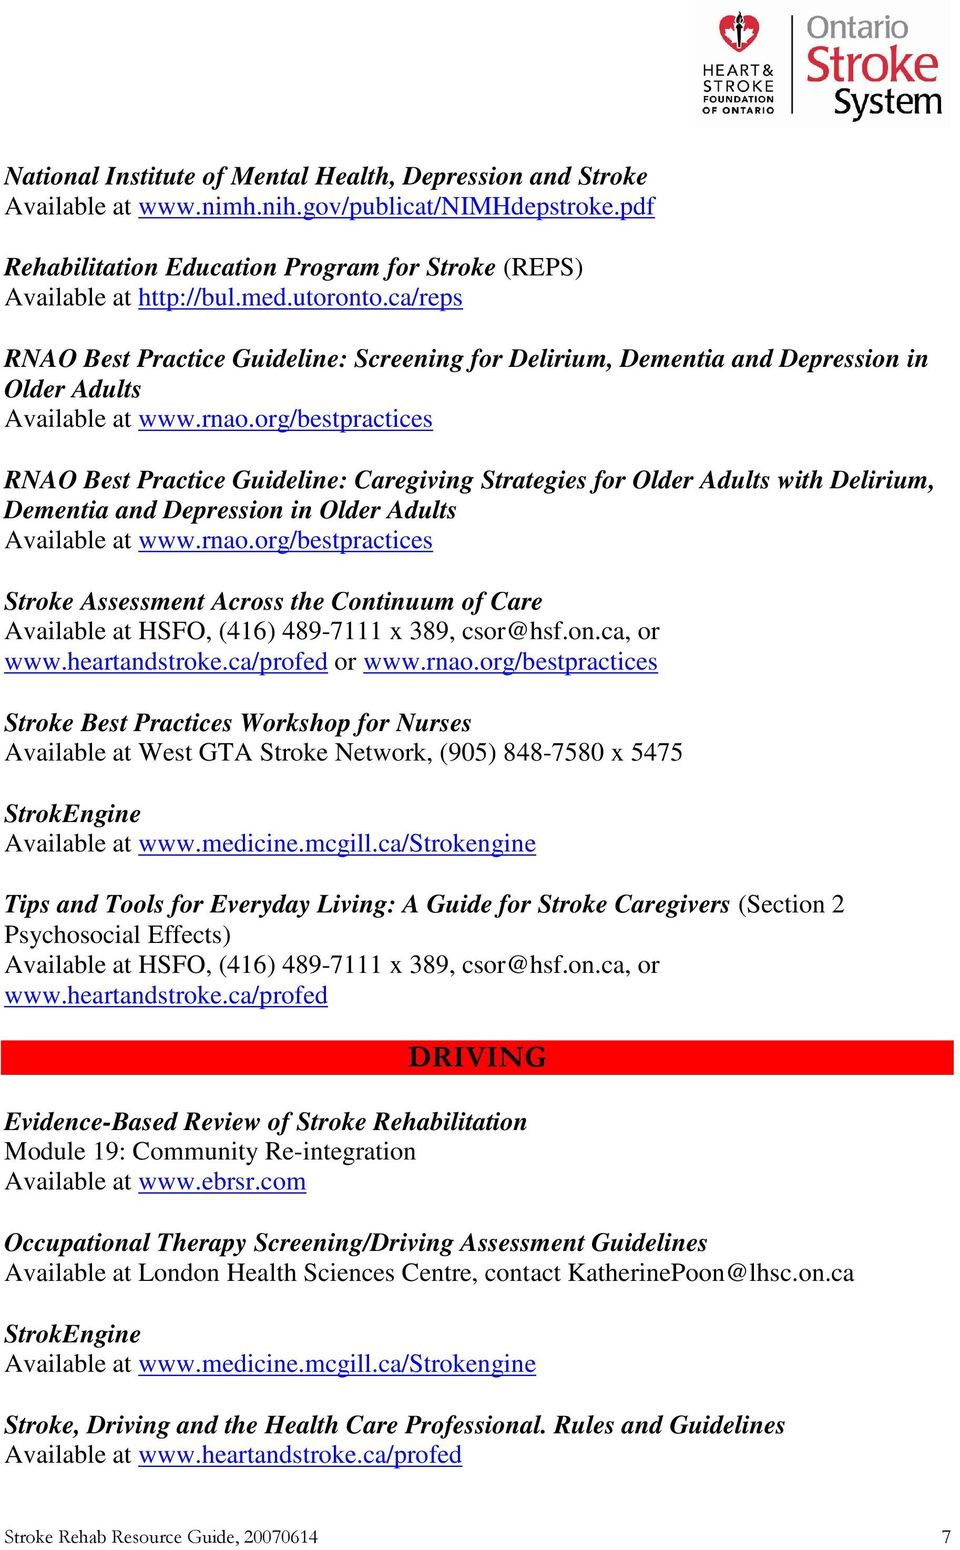 org/bestpractices RNAO Best Practice Guideline: Caregiving Strategies for Older Adults with Delirium, Dementia and Depression in Older Adults Available at www.rnao.